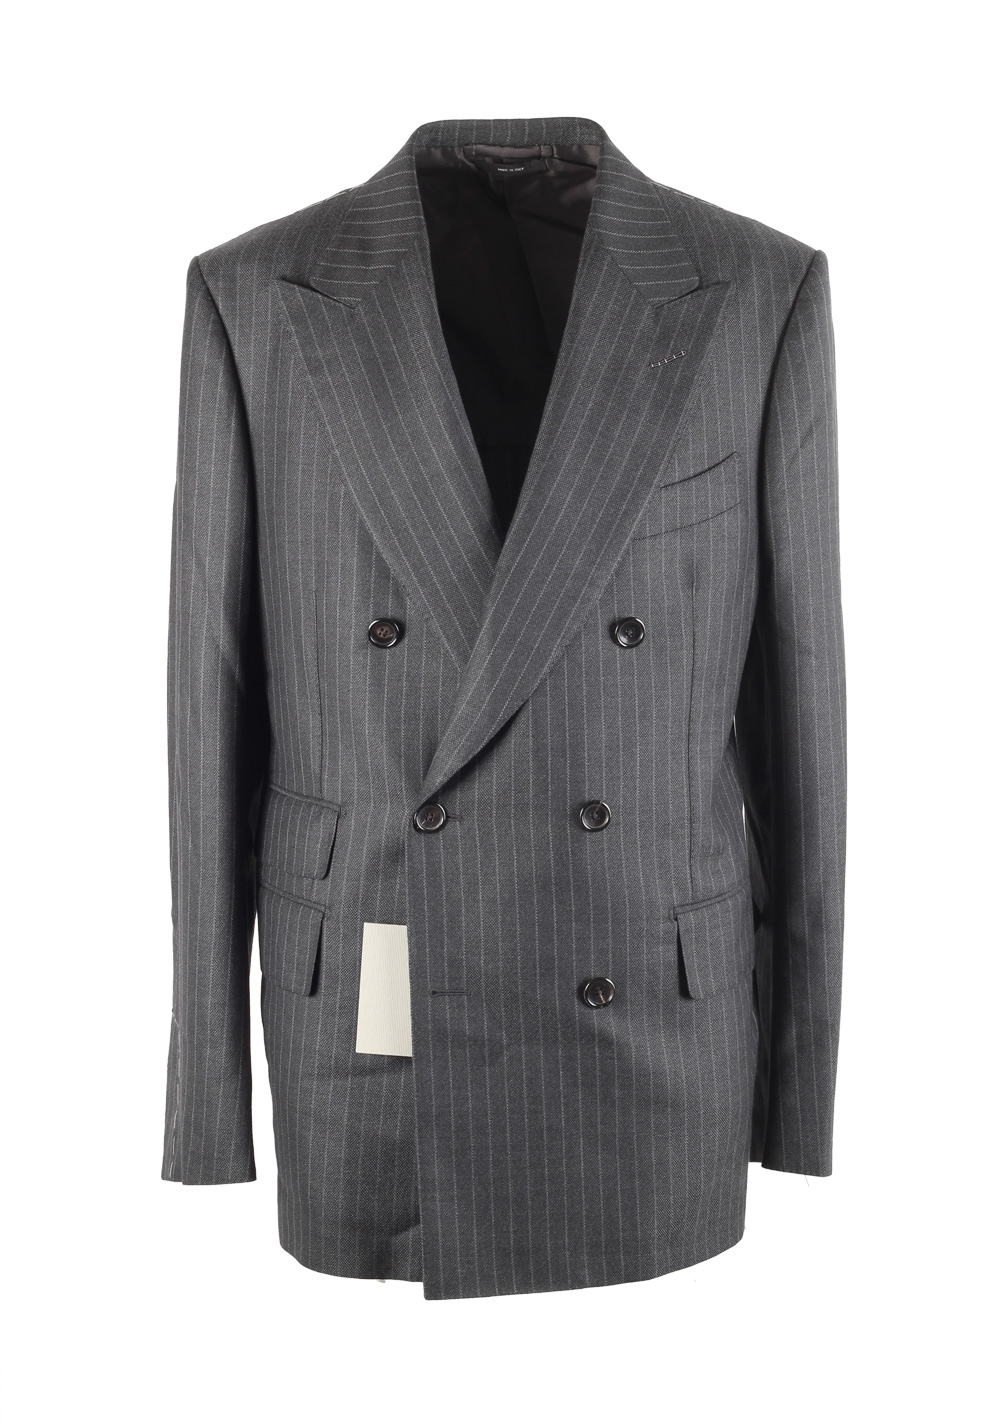 TOM FORD Shelton Gray Double Breasted Suit Size 50 / 40R U.S. | Costume Limité